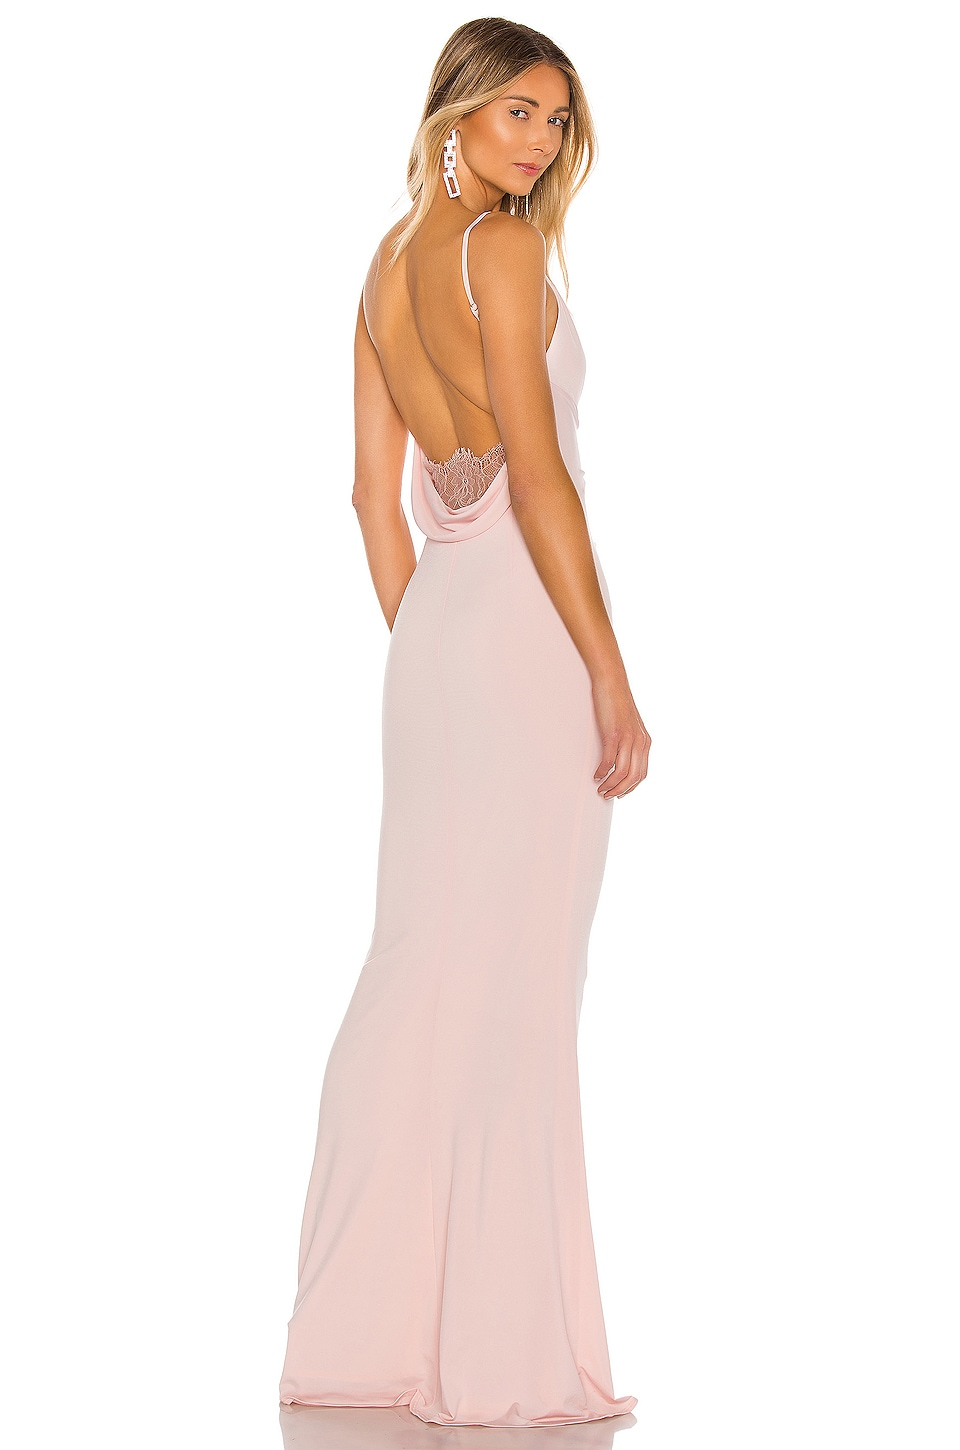 Surreal Dress             Katie May                                                                                                       CA$ 355.46 1